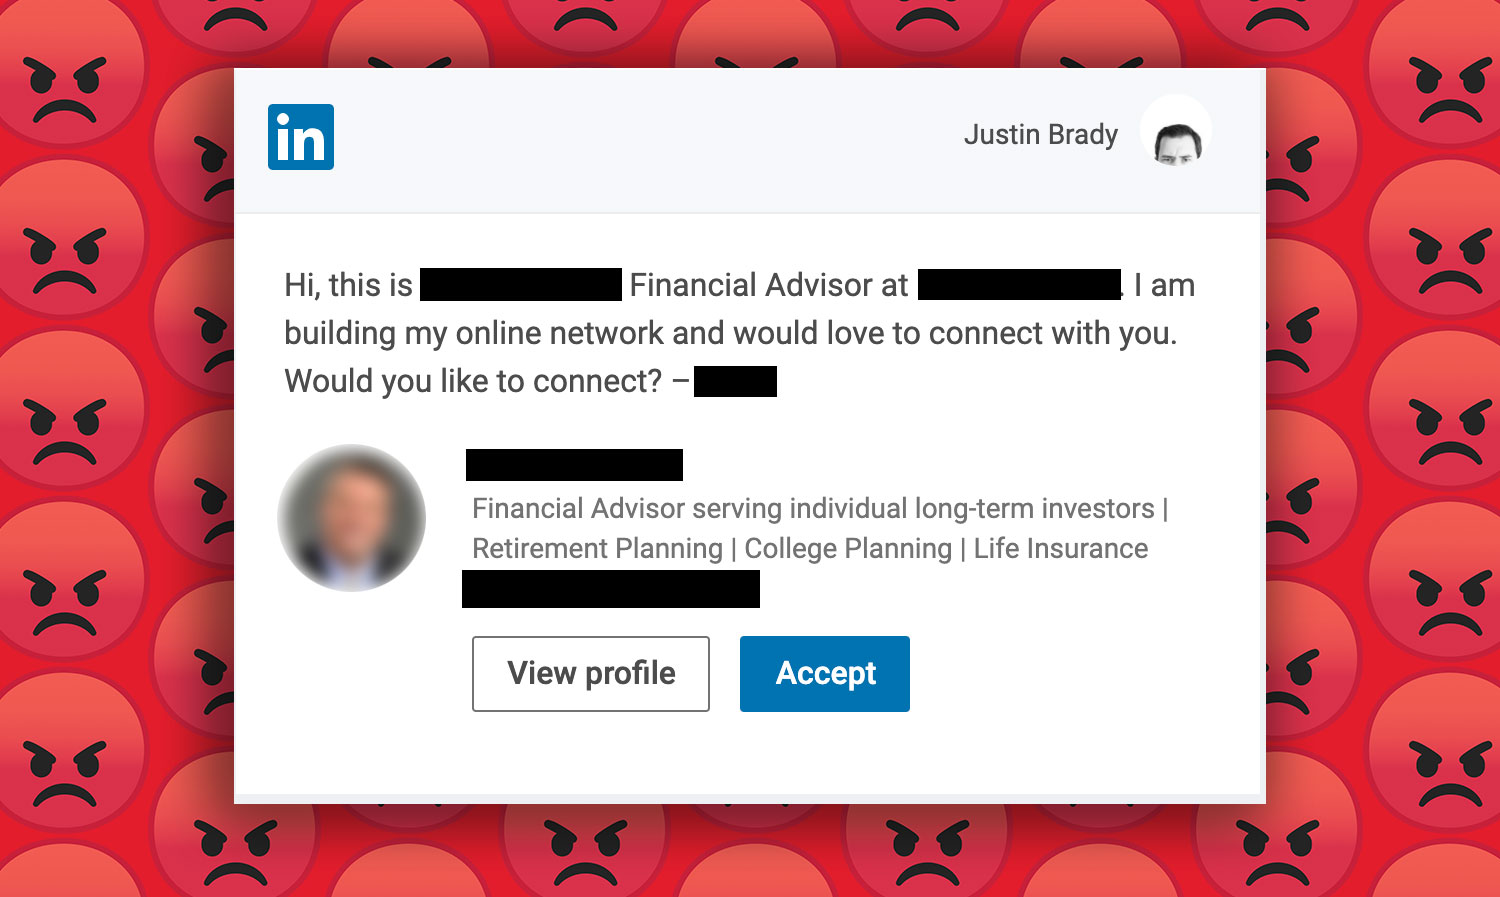 LinkedIn screen shot with angry faces